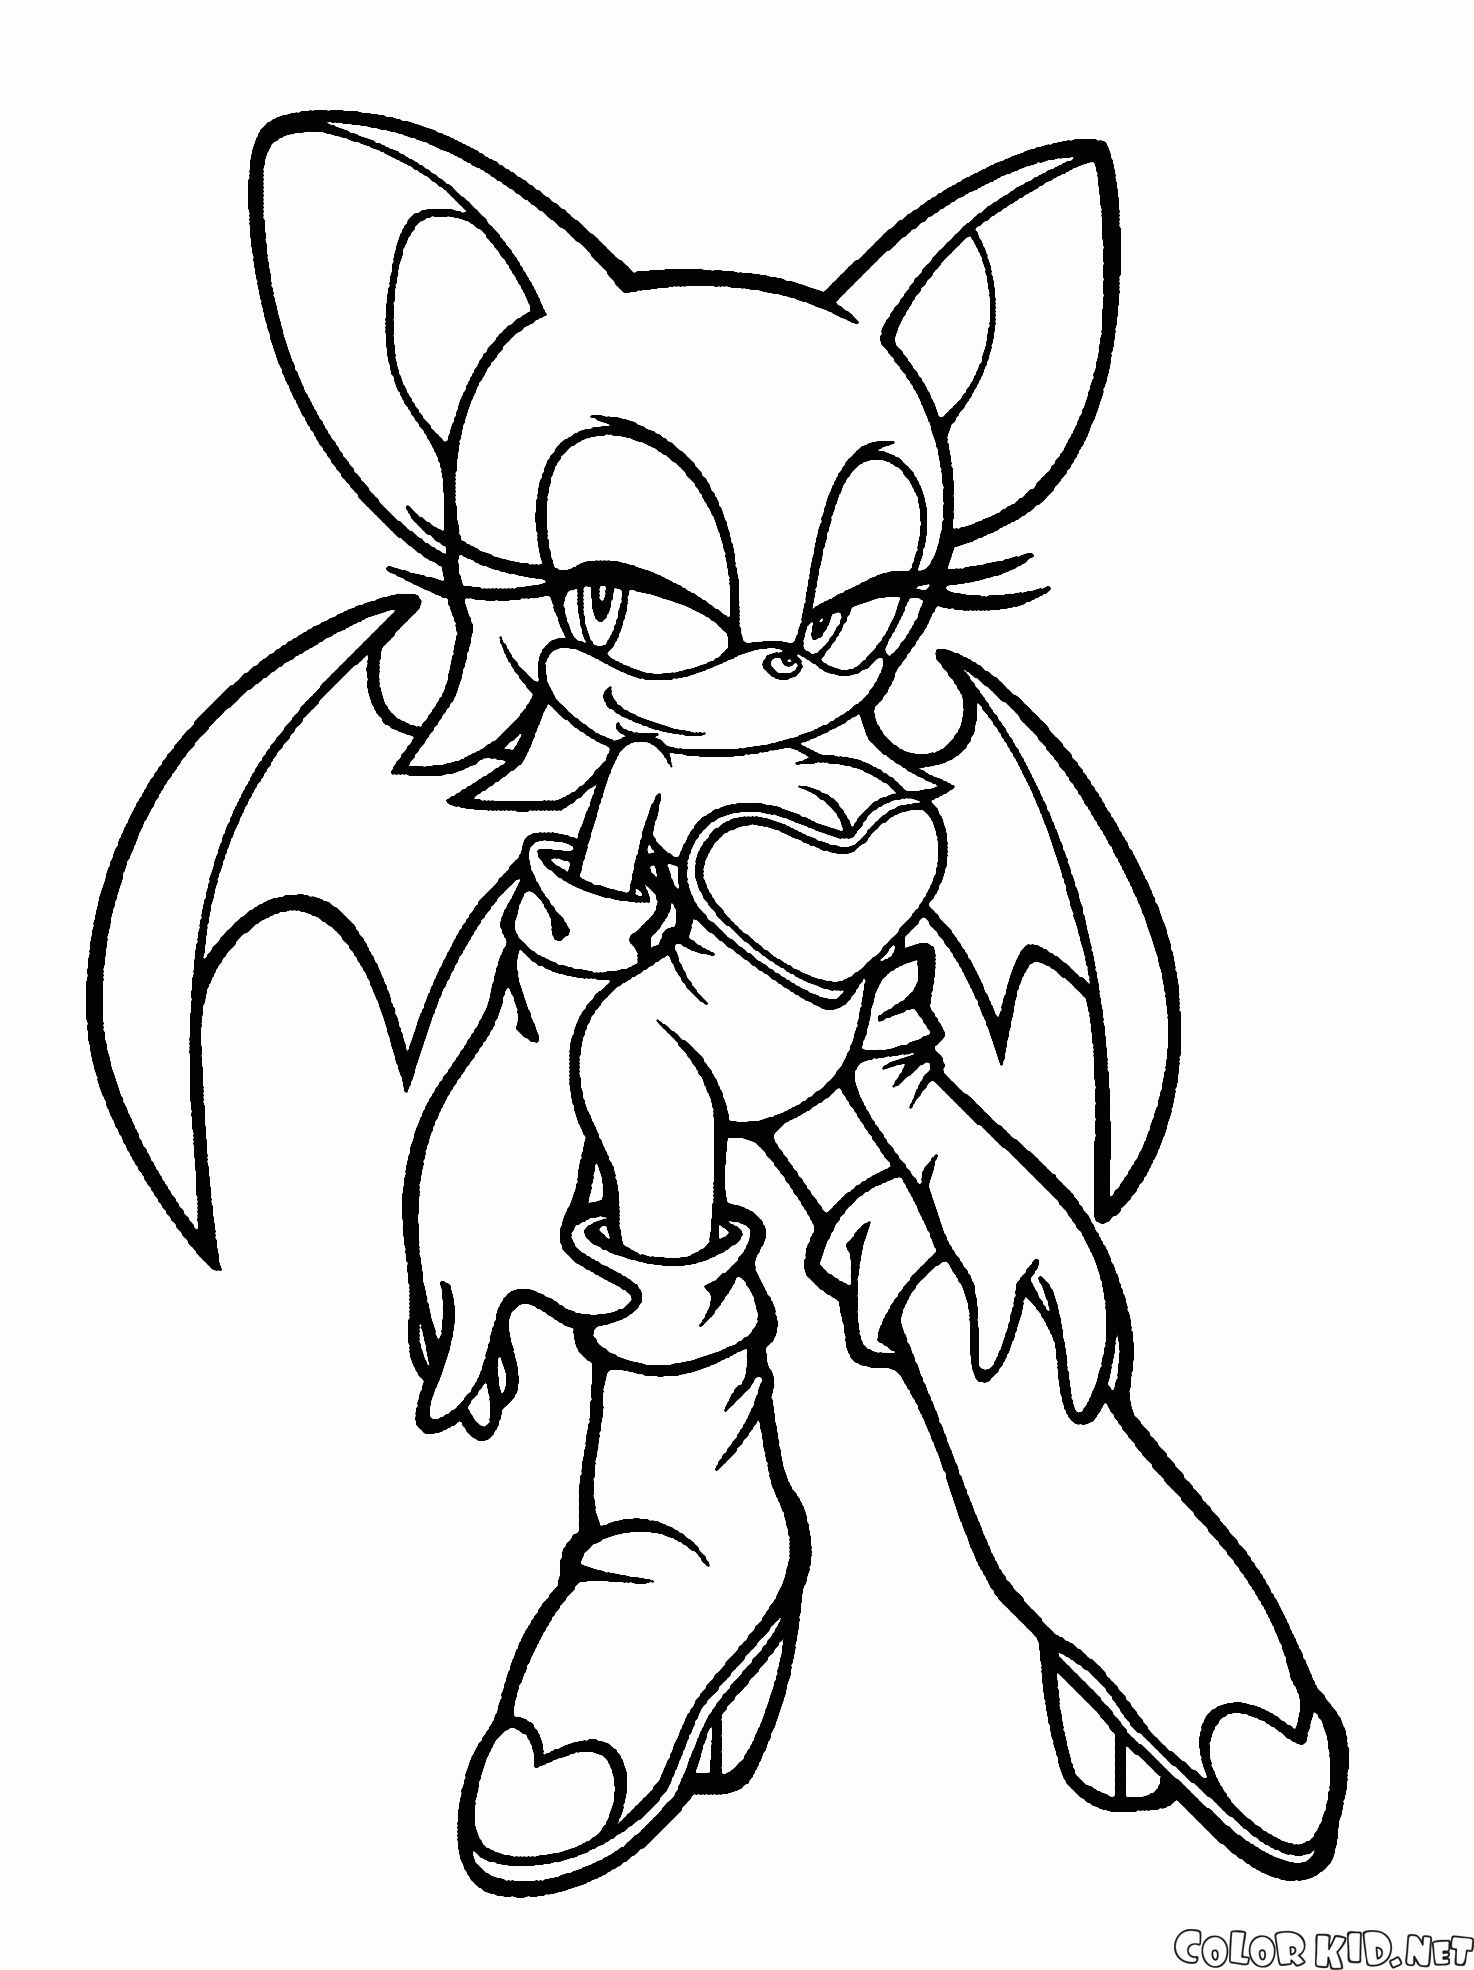 Sonic Rouge Coloring Pages Download Bat Coloring Pages Cartoon Coloring Pages Coloring Pages For Girls